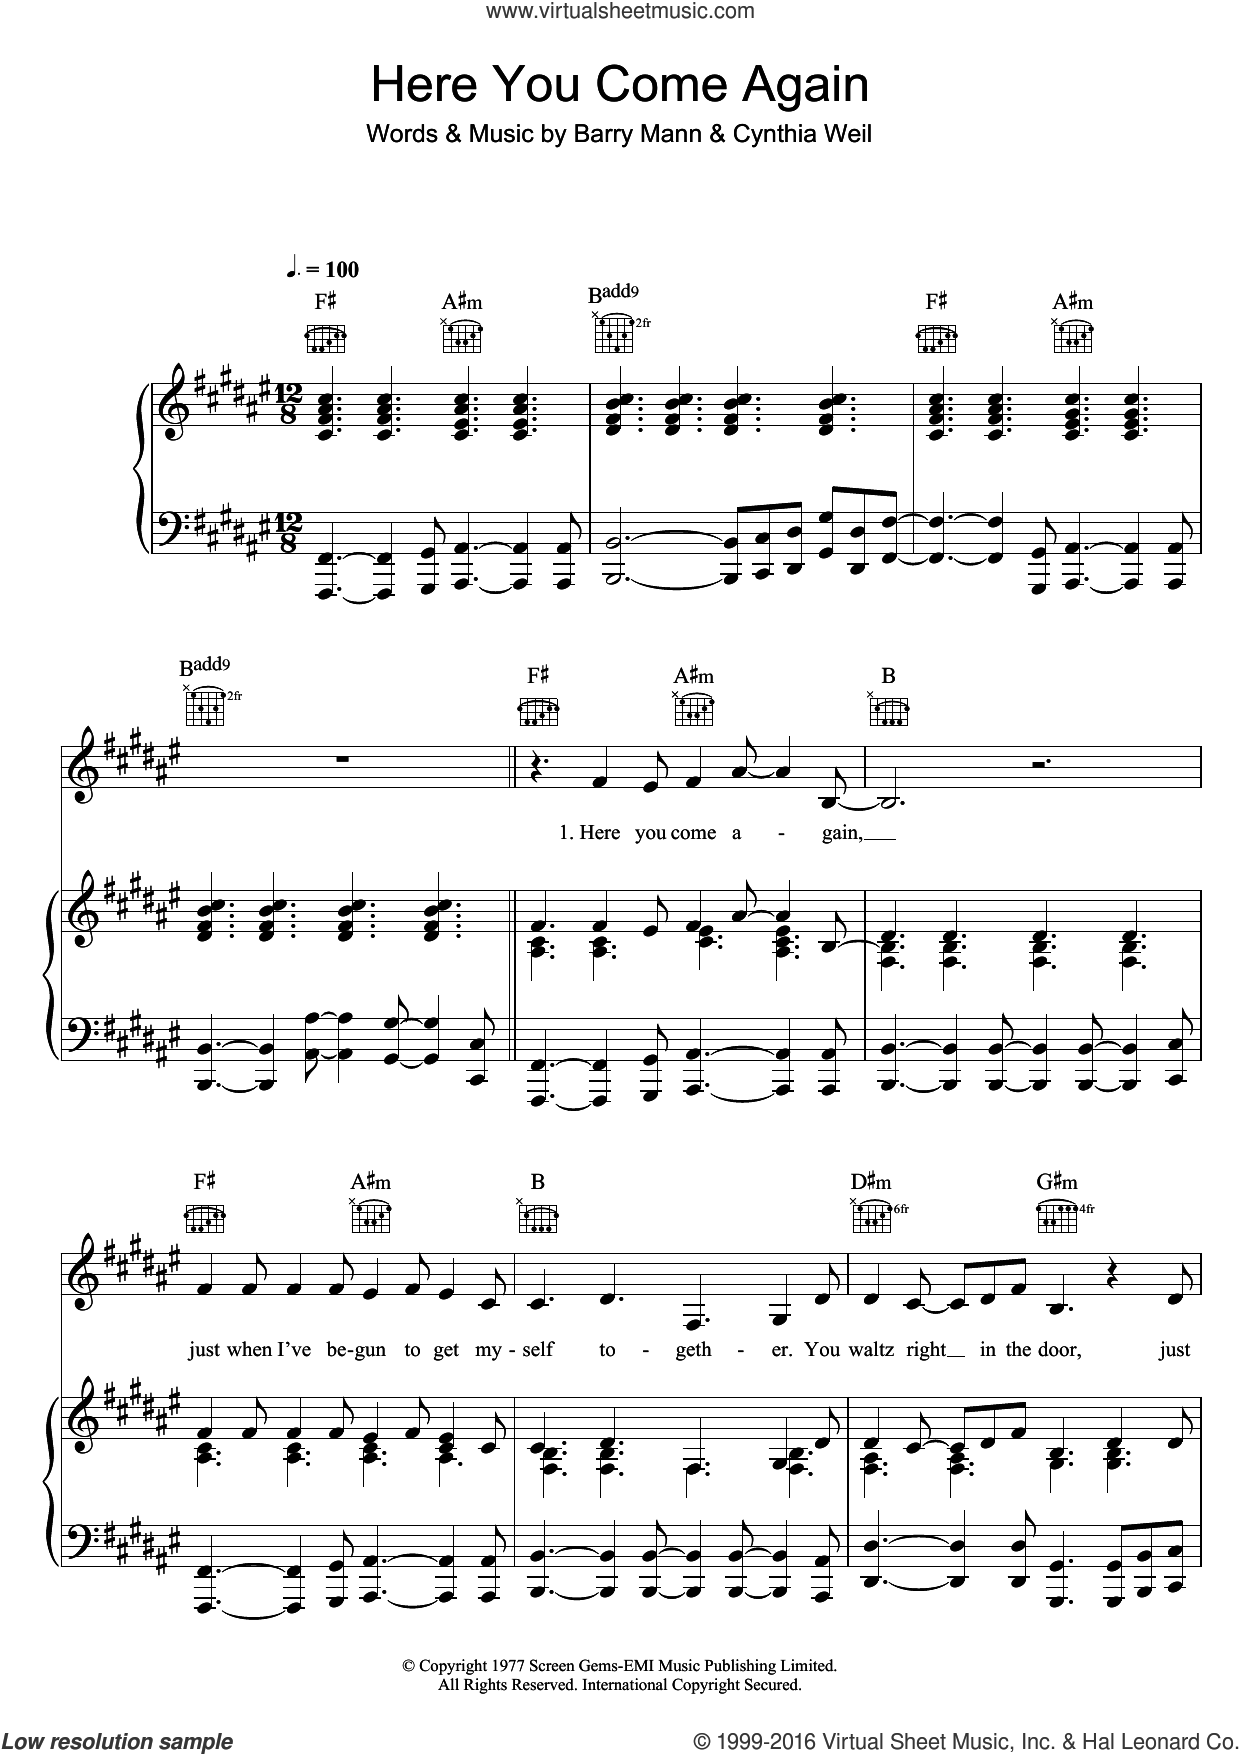 Here You Come Again sheet music for voice, piano or guitar by Barry Mann